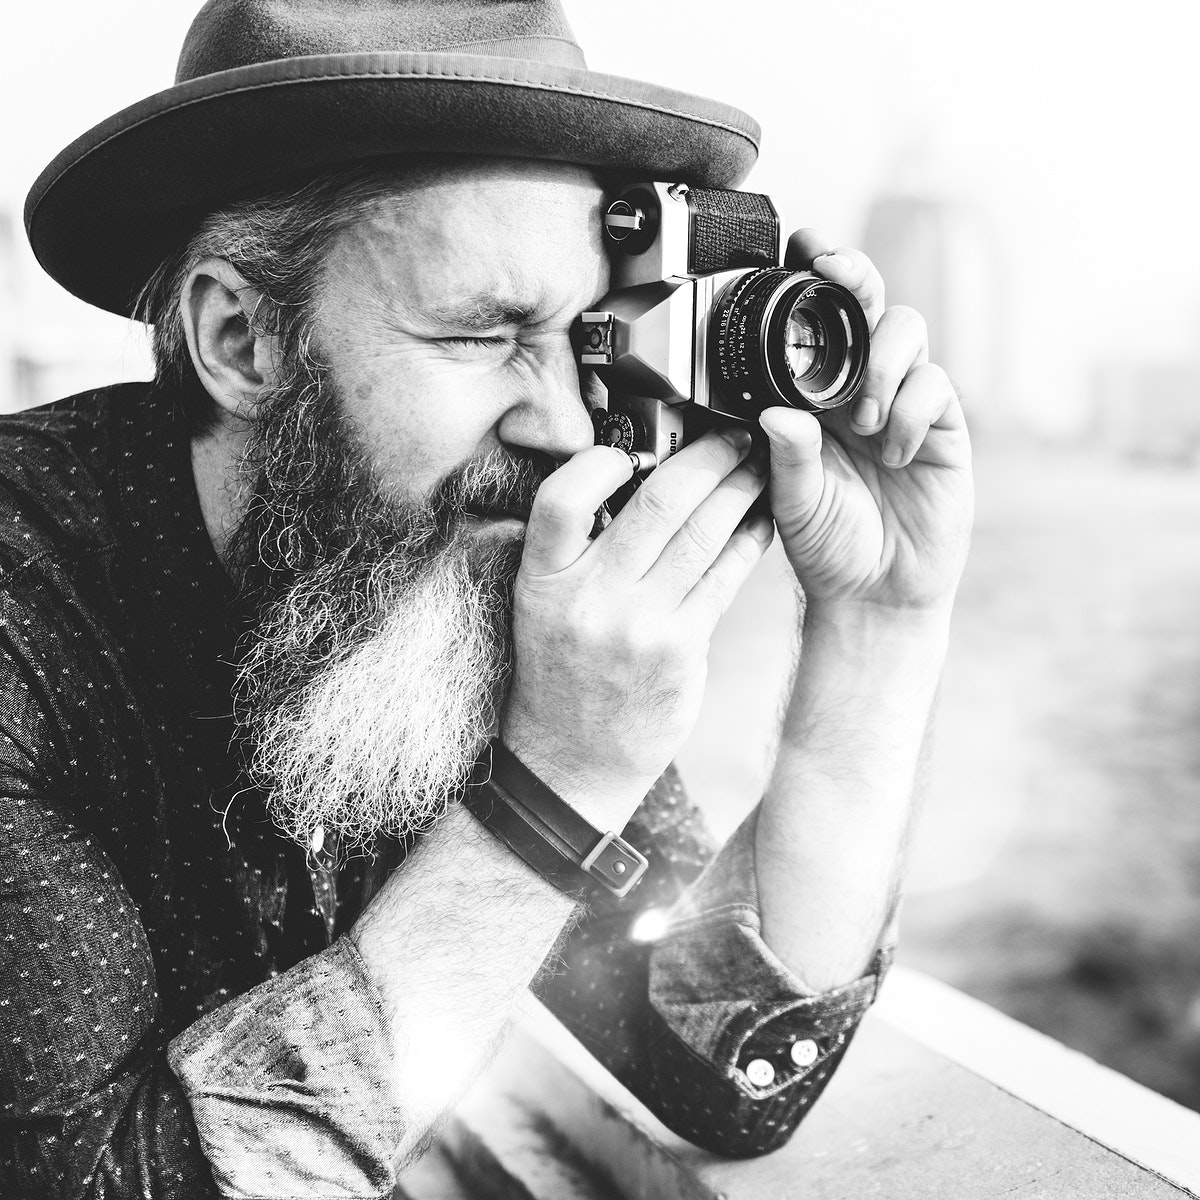 A photographer with an analog camera